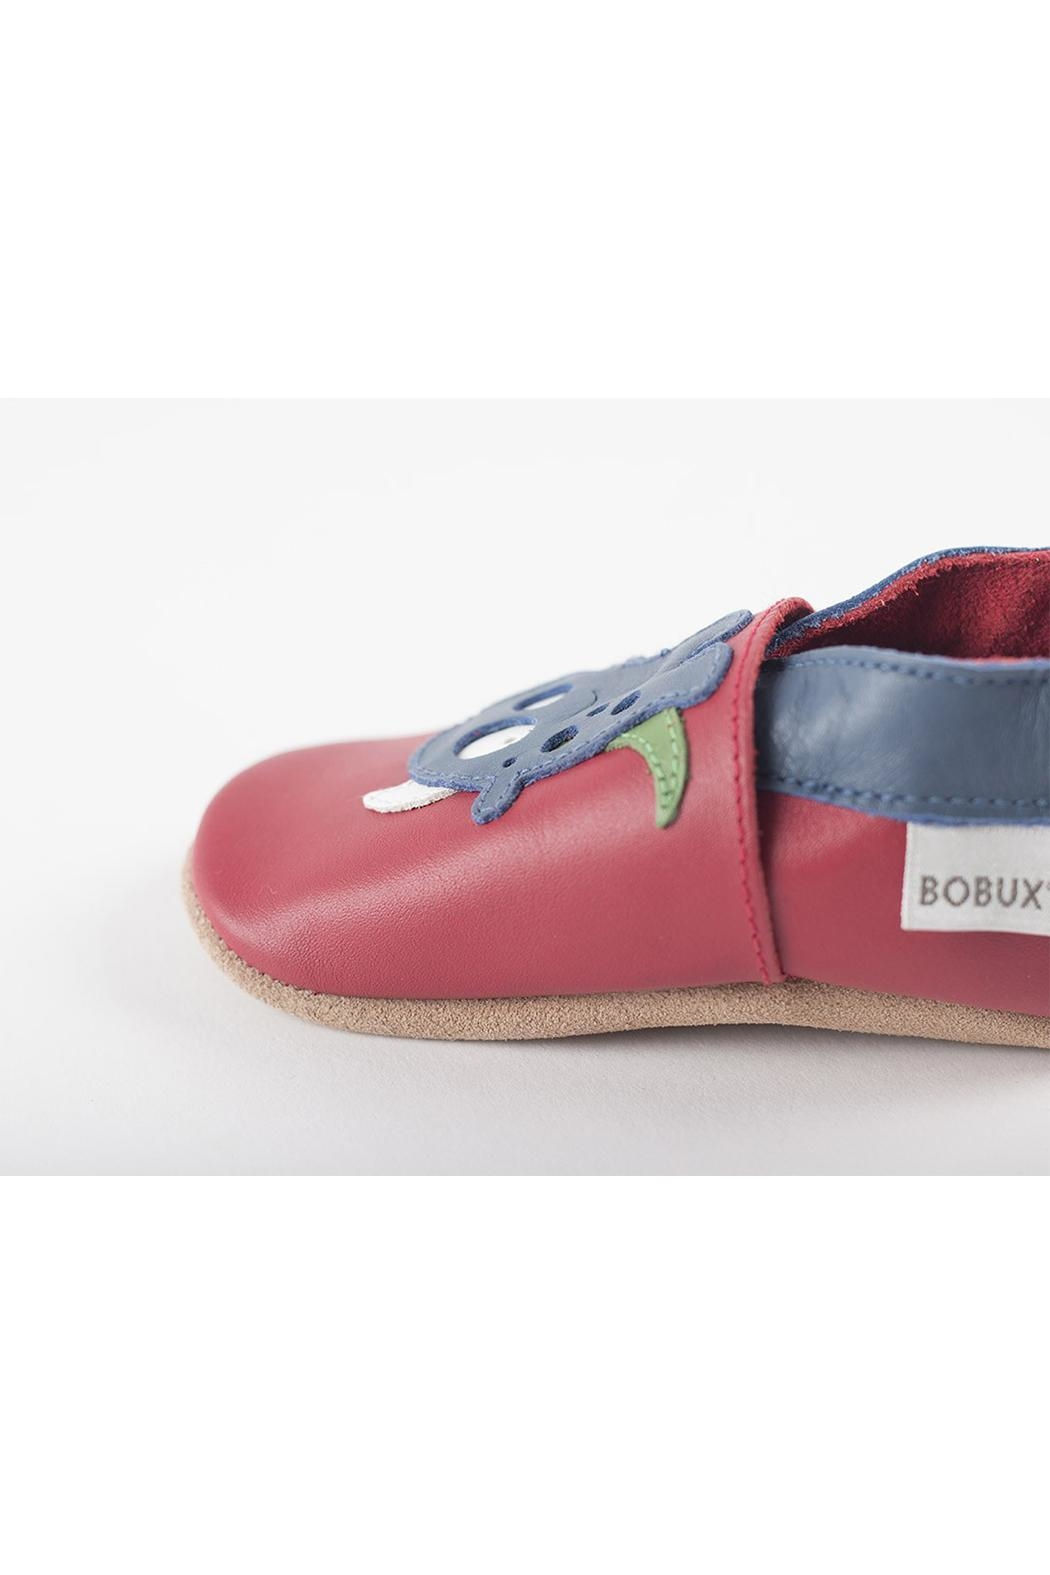 Bobux Red-Monster Soft-Sole Shoes - Front Full Image